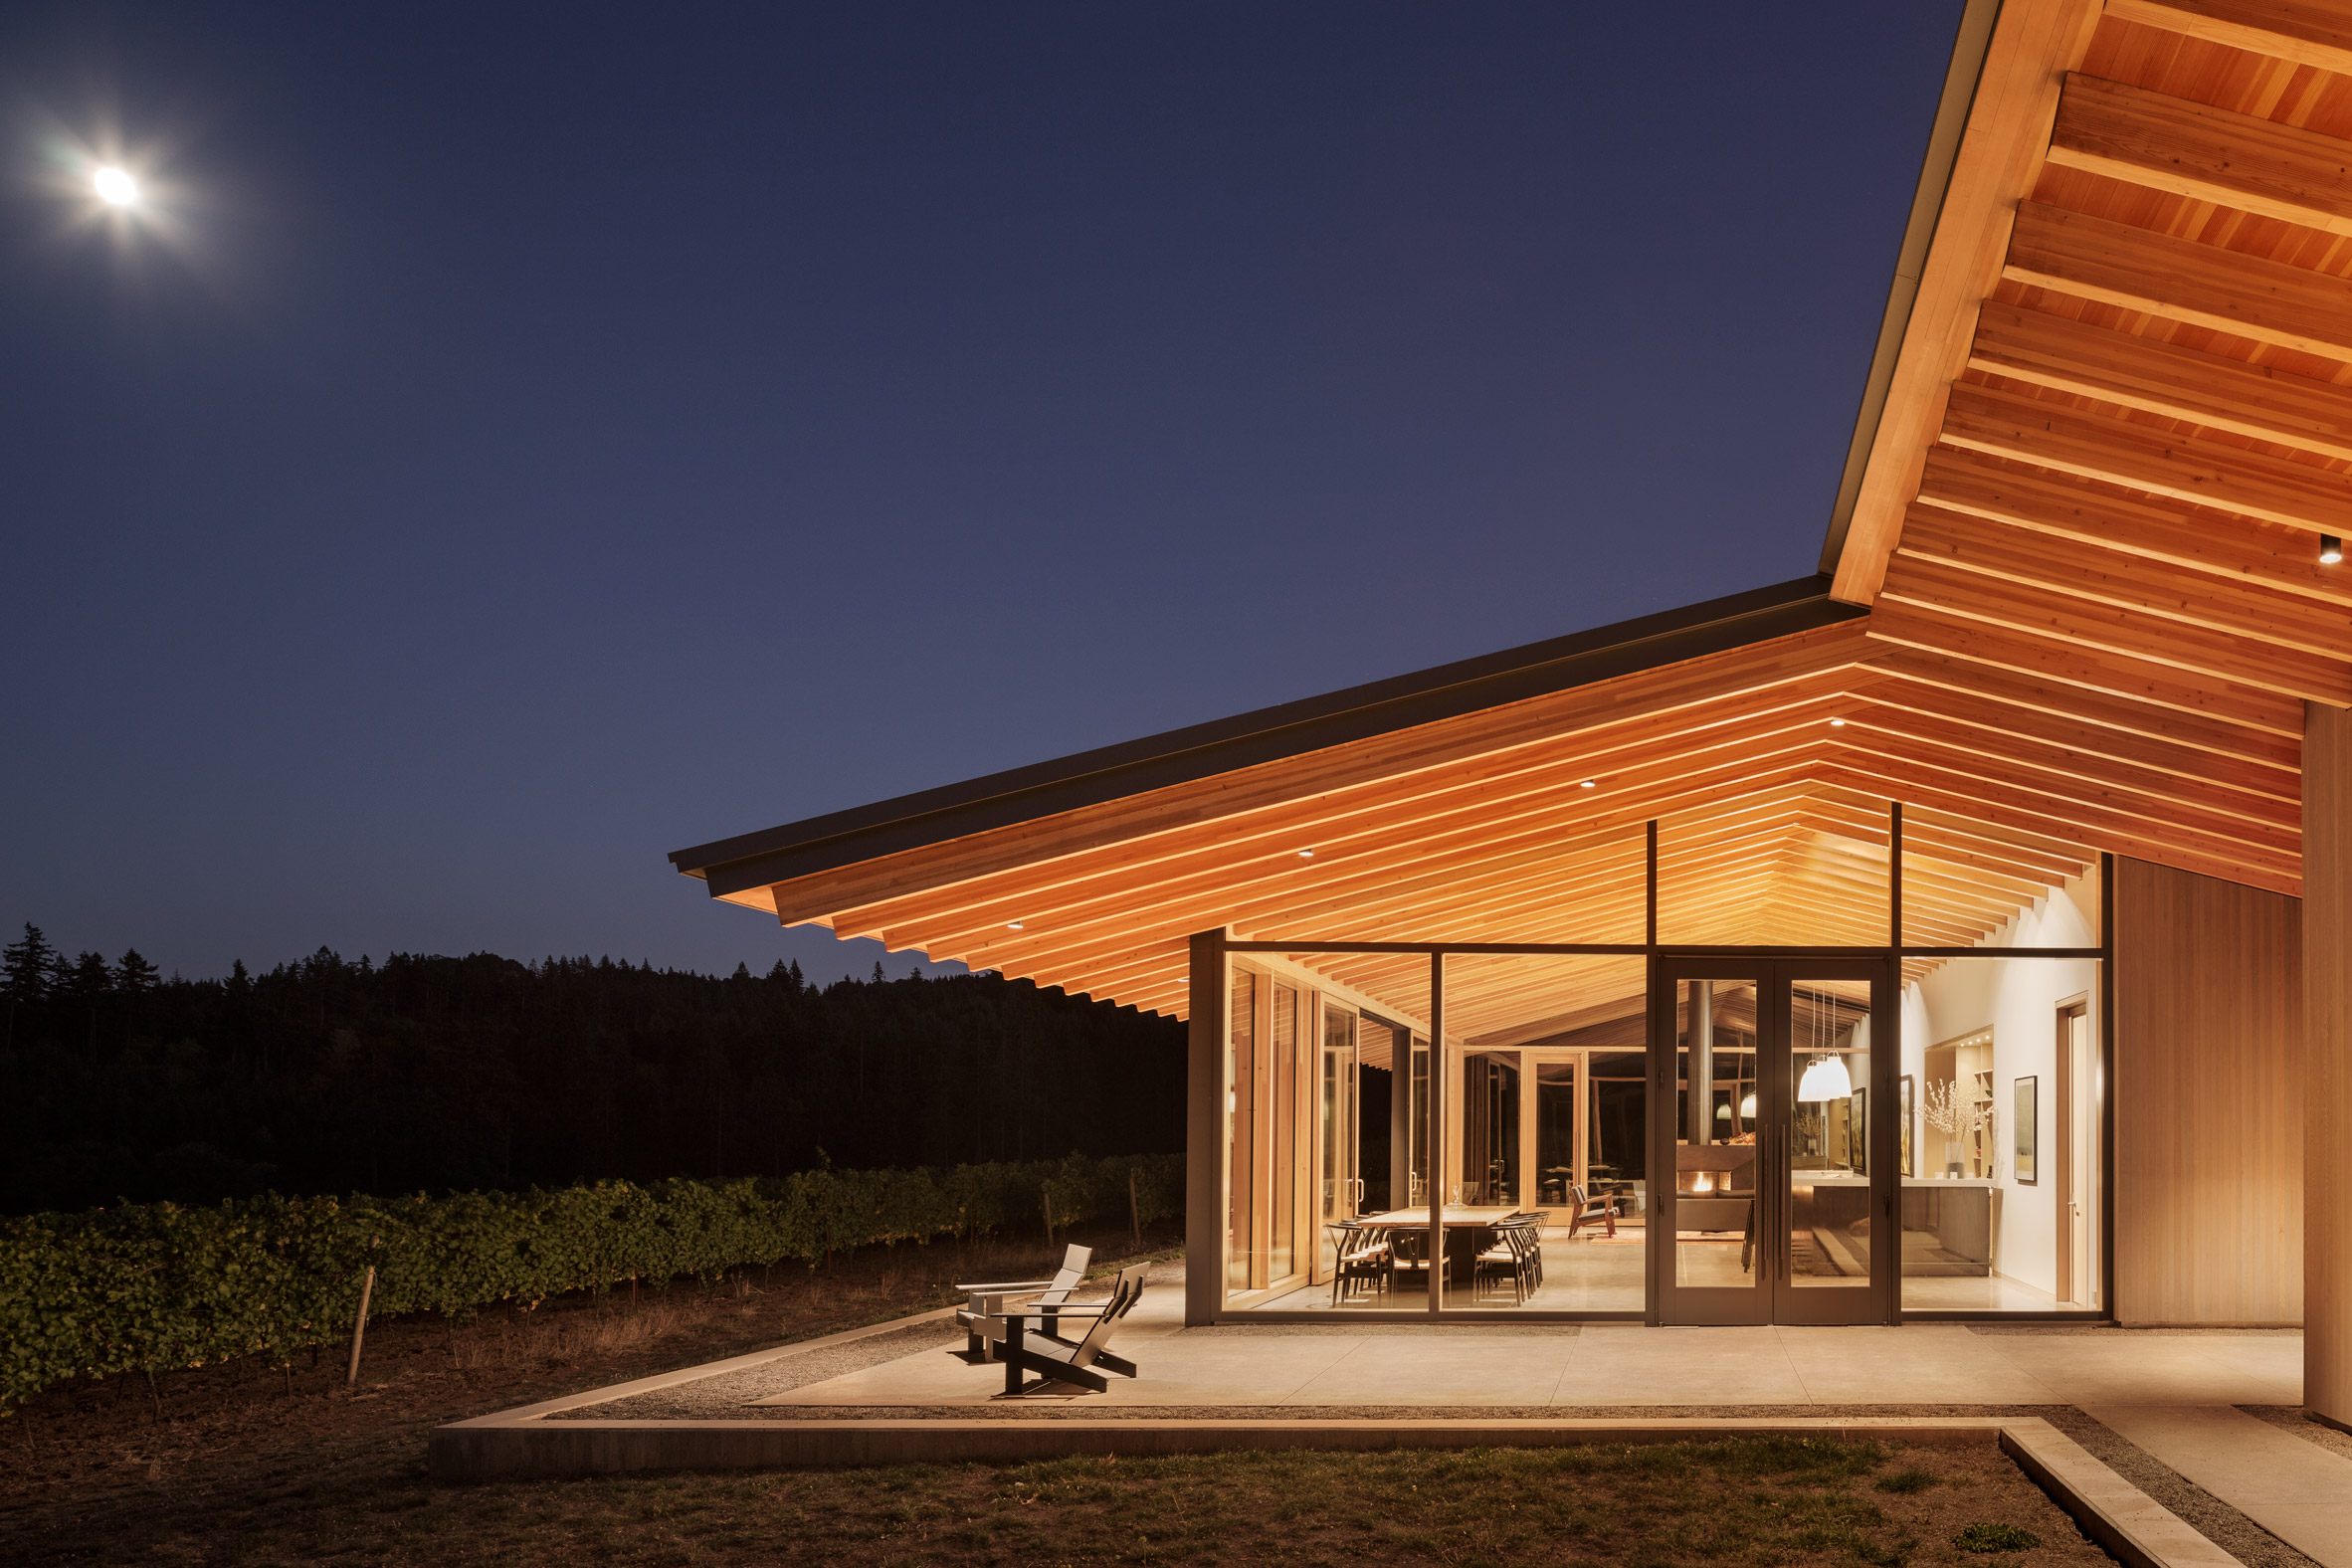 Lever Architecture designs Stunning Wine Tasting Room in Oregon lever architecture Lever Architecture designs Stunning Wine Tasting Room in Oregon Lever Architecture designs Stunning Wine Tasting Room in Oregon 5